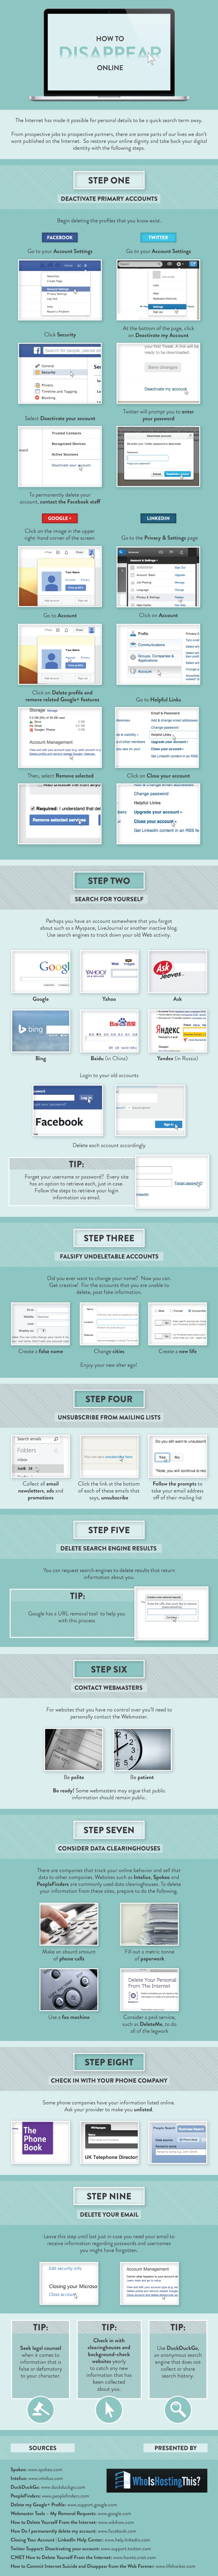 How to Disappear Online Infographic